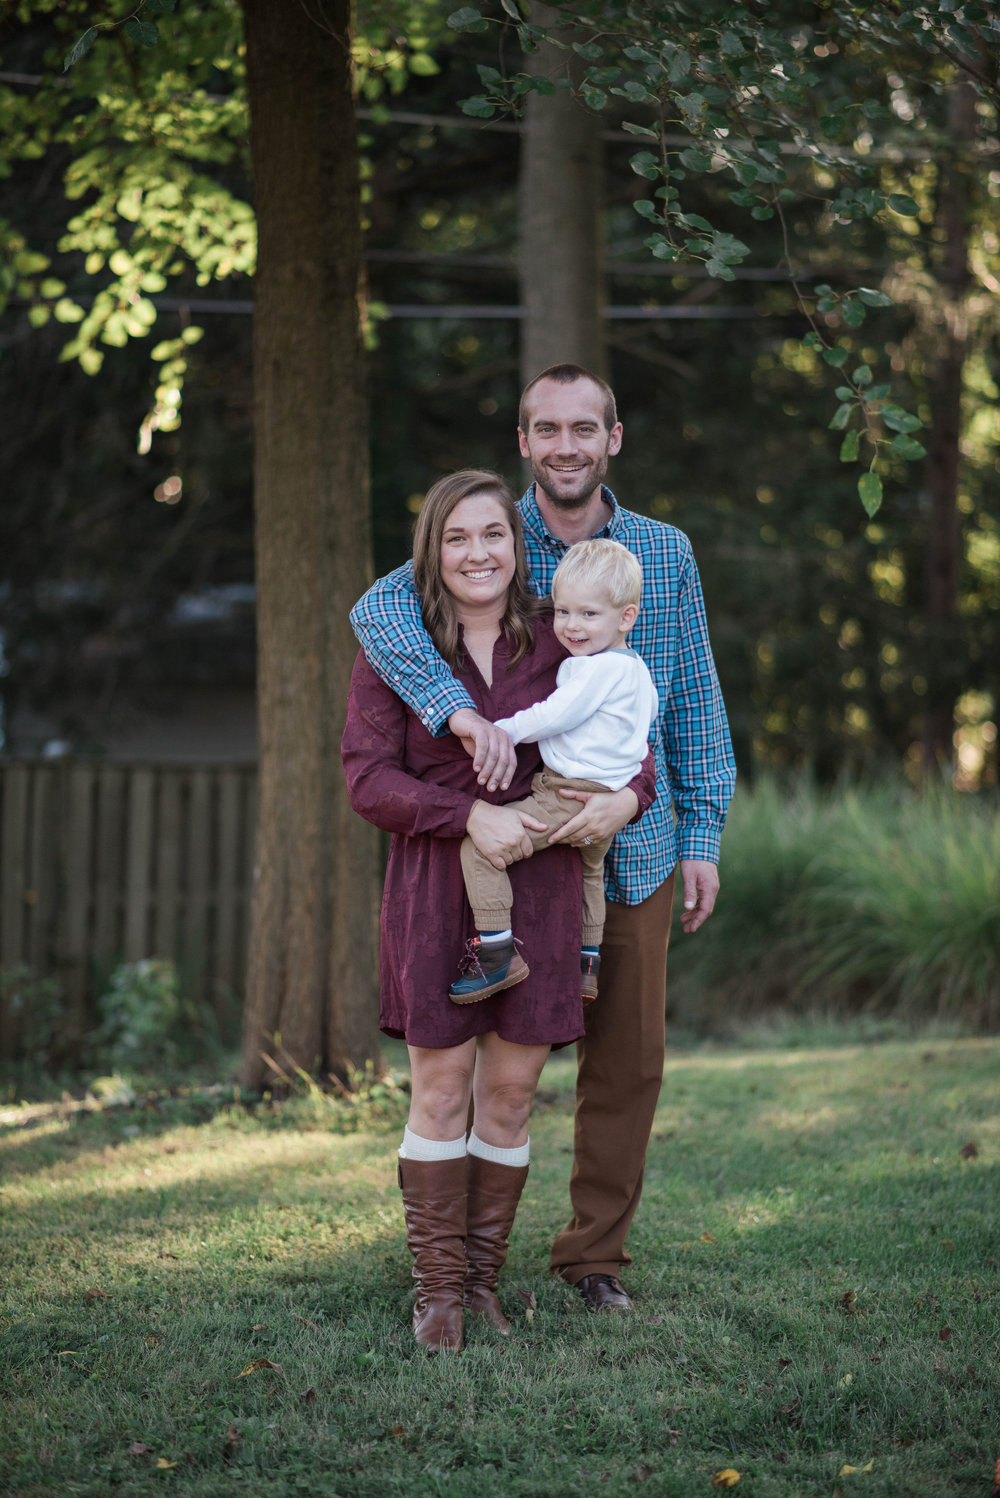 Parents and Son | Family Photography | Maryland, Washington DC, Pennsylvania, Virginia Portrait Photographer | Anne Casey Photography